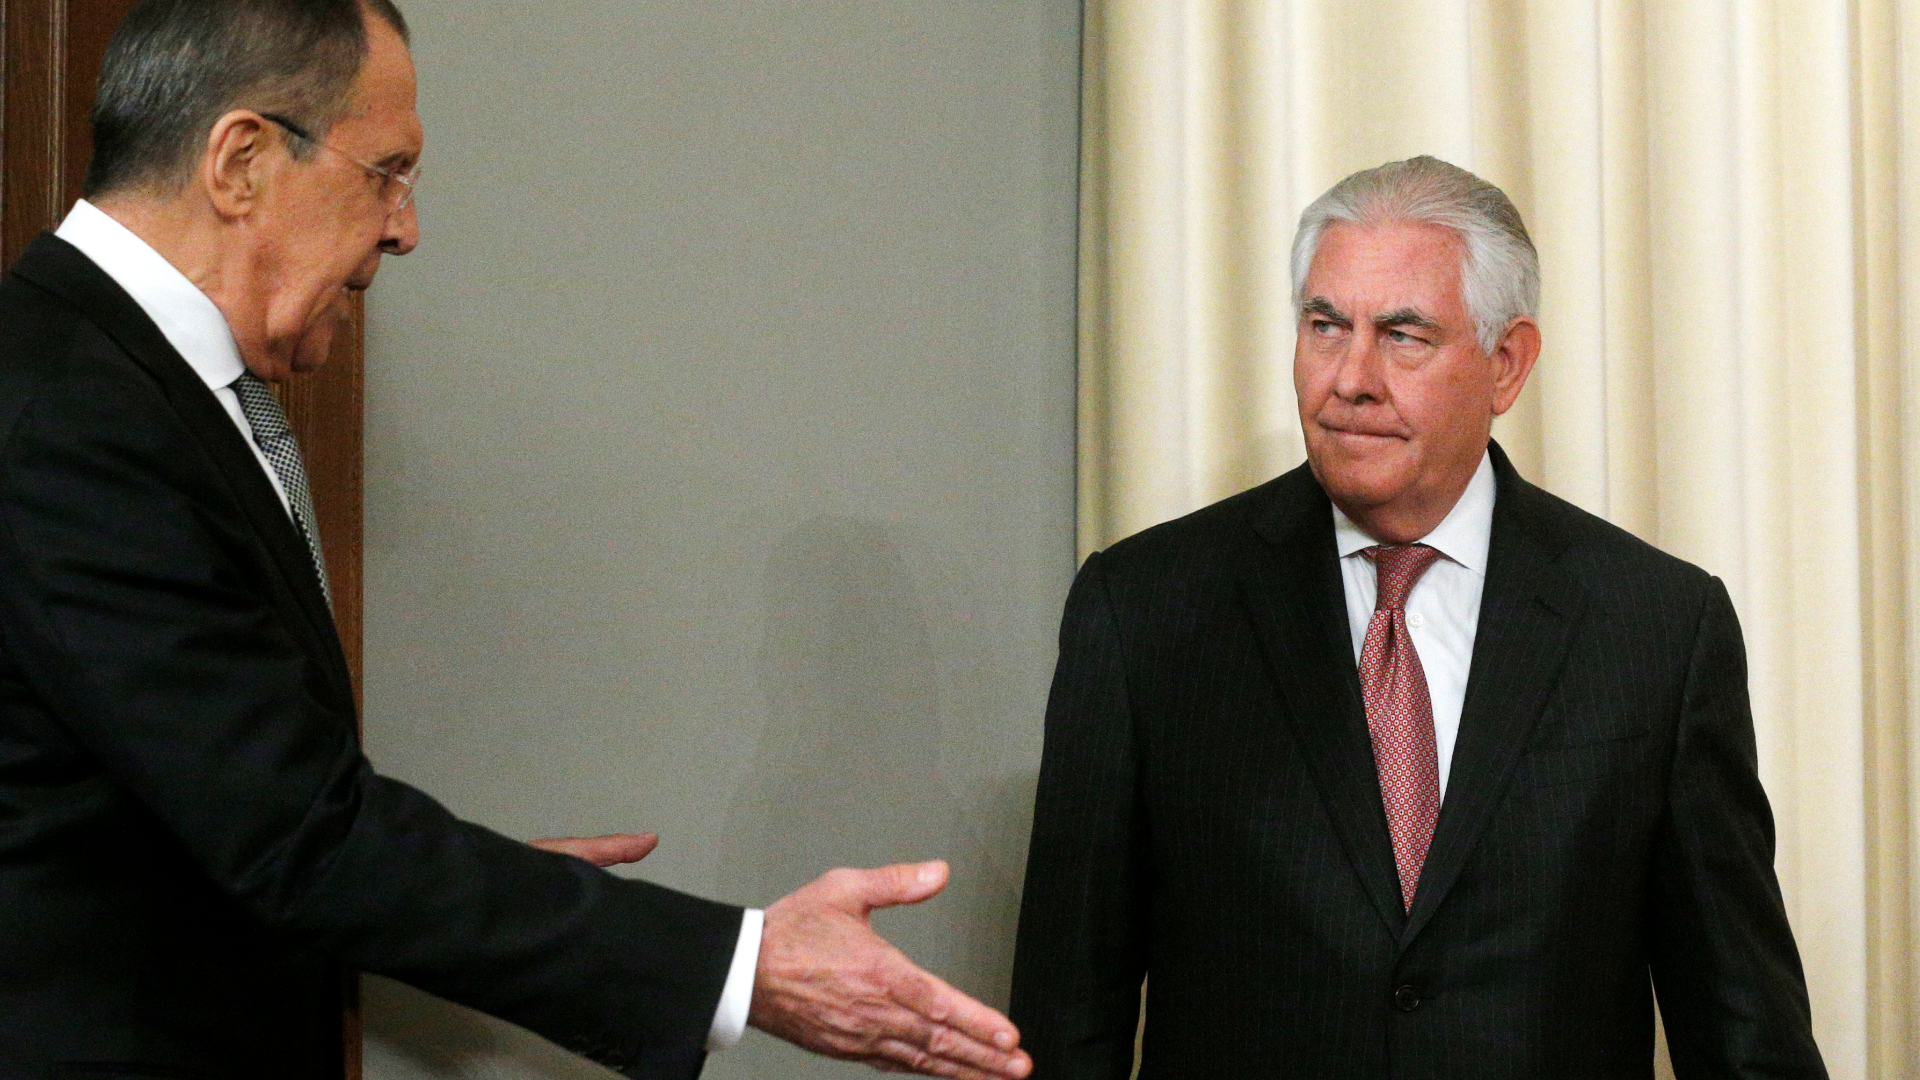 Tillerson meets with Putin amid deepening tensions over U.S. missile strikes in Syria